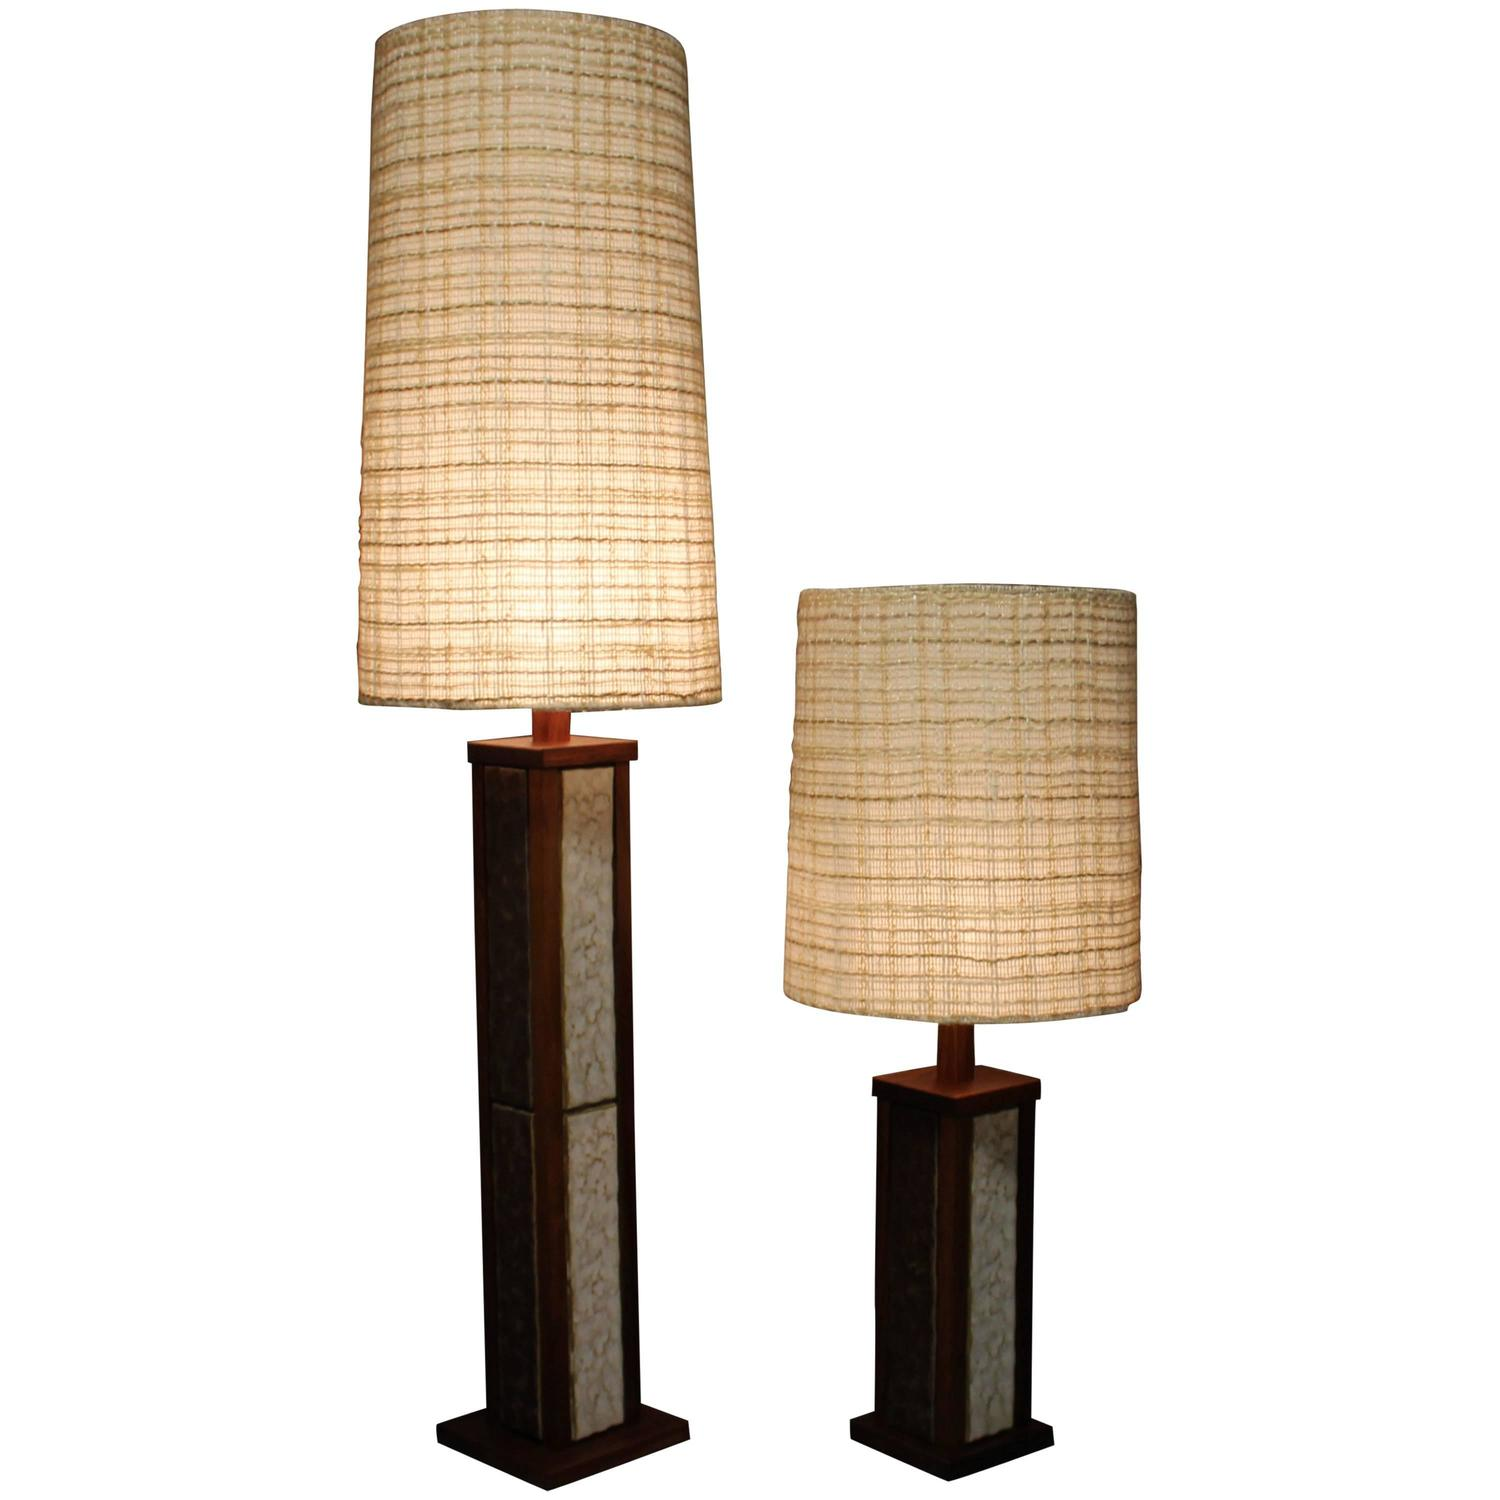 Mid century modern rosewood and ceramic matching floor and table mid century modern rosewood and ceramic matching floor and table lamp for sale at 1stdibs aloadofball Gallery